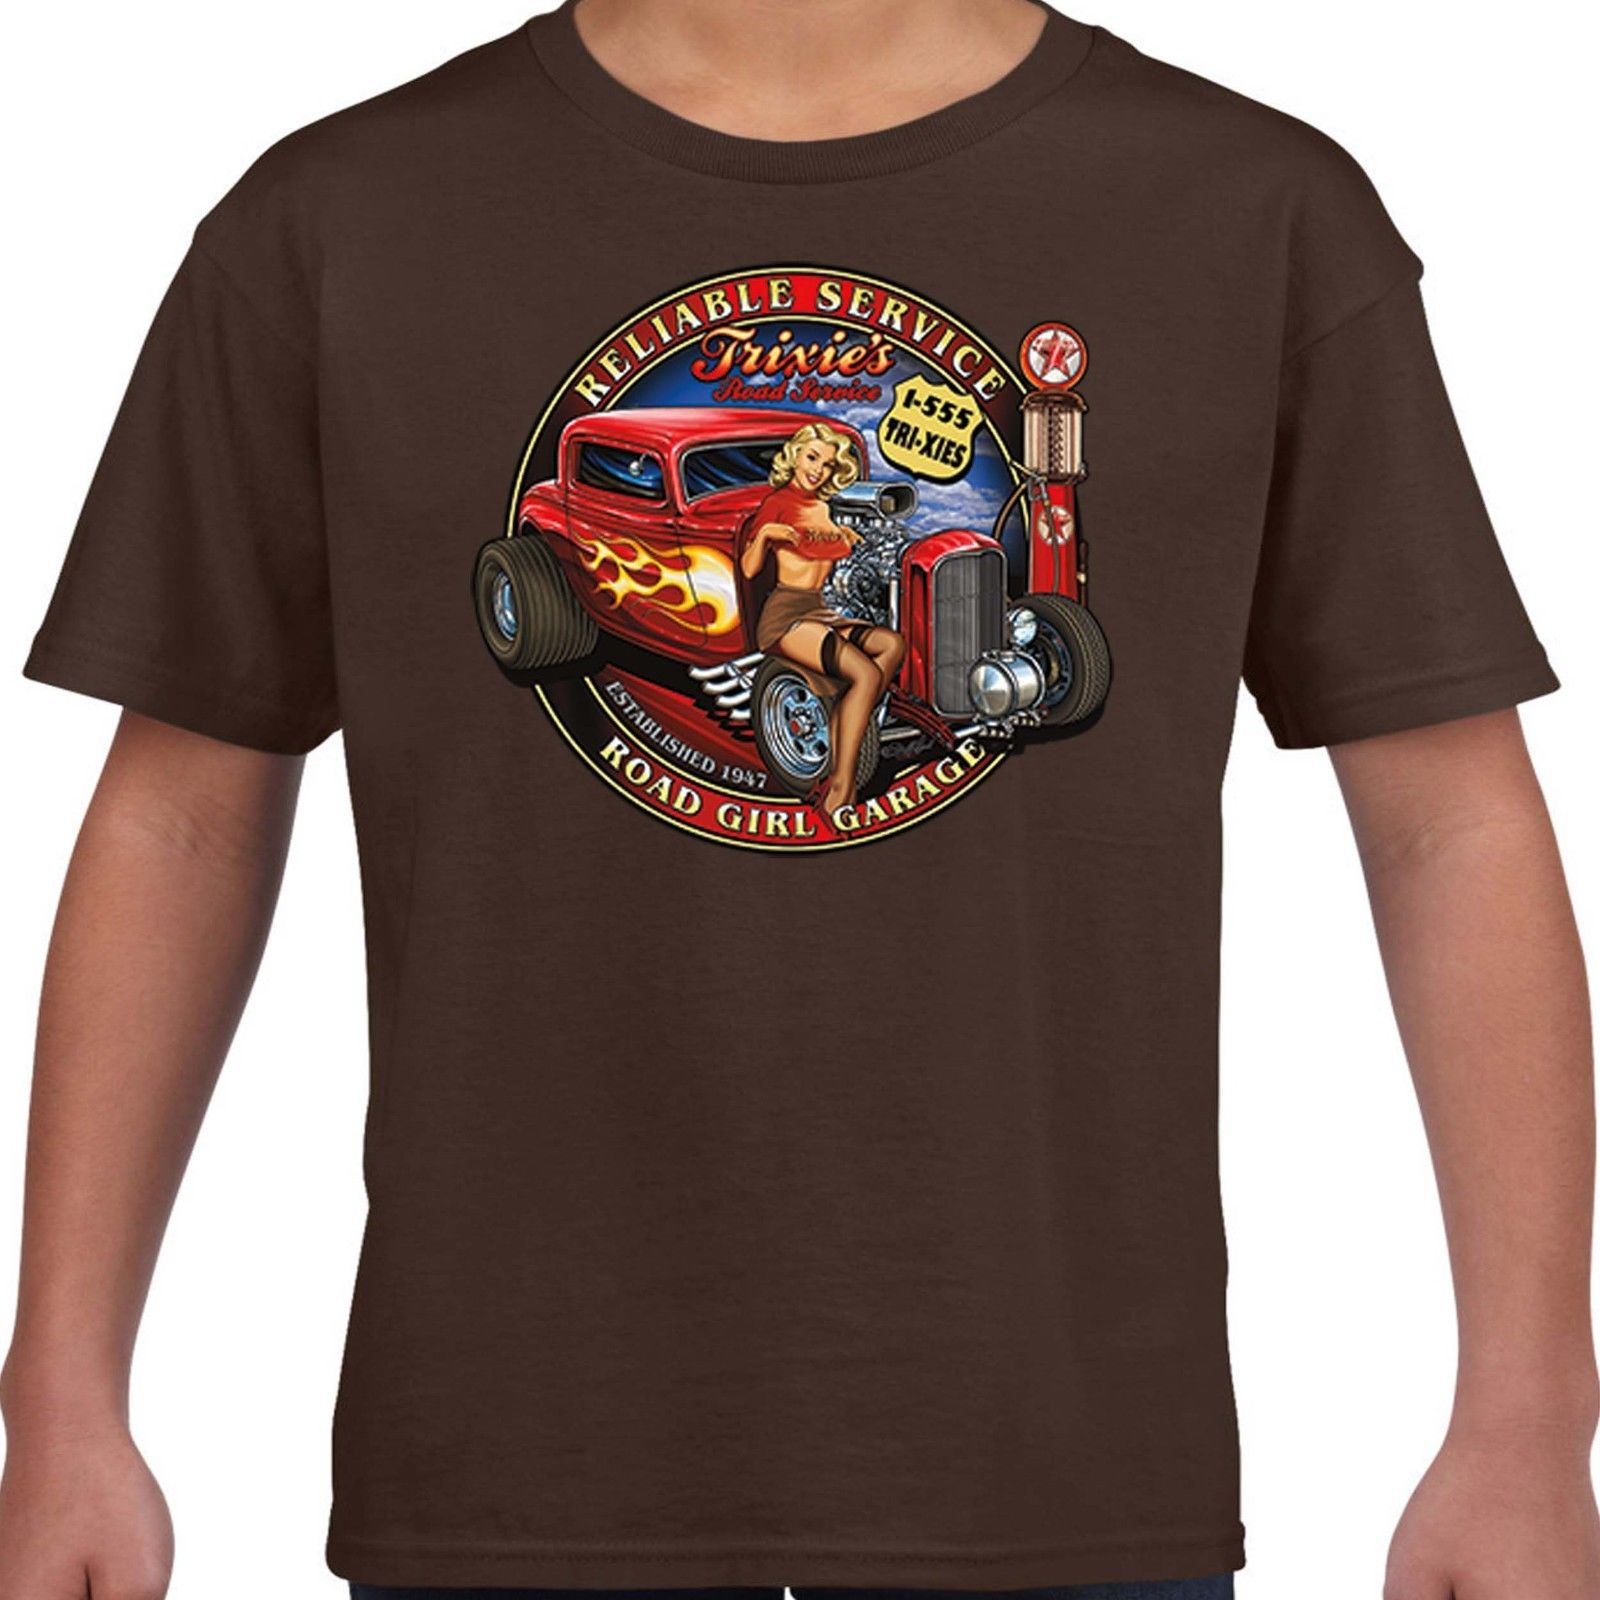 Hotrod 58 T Shirt Rat Rod Old Skool Garage American Classic Vintage V8 Car 43